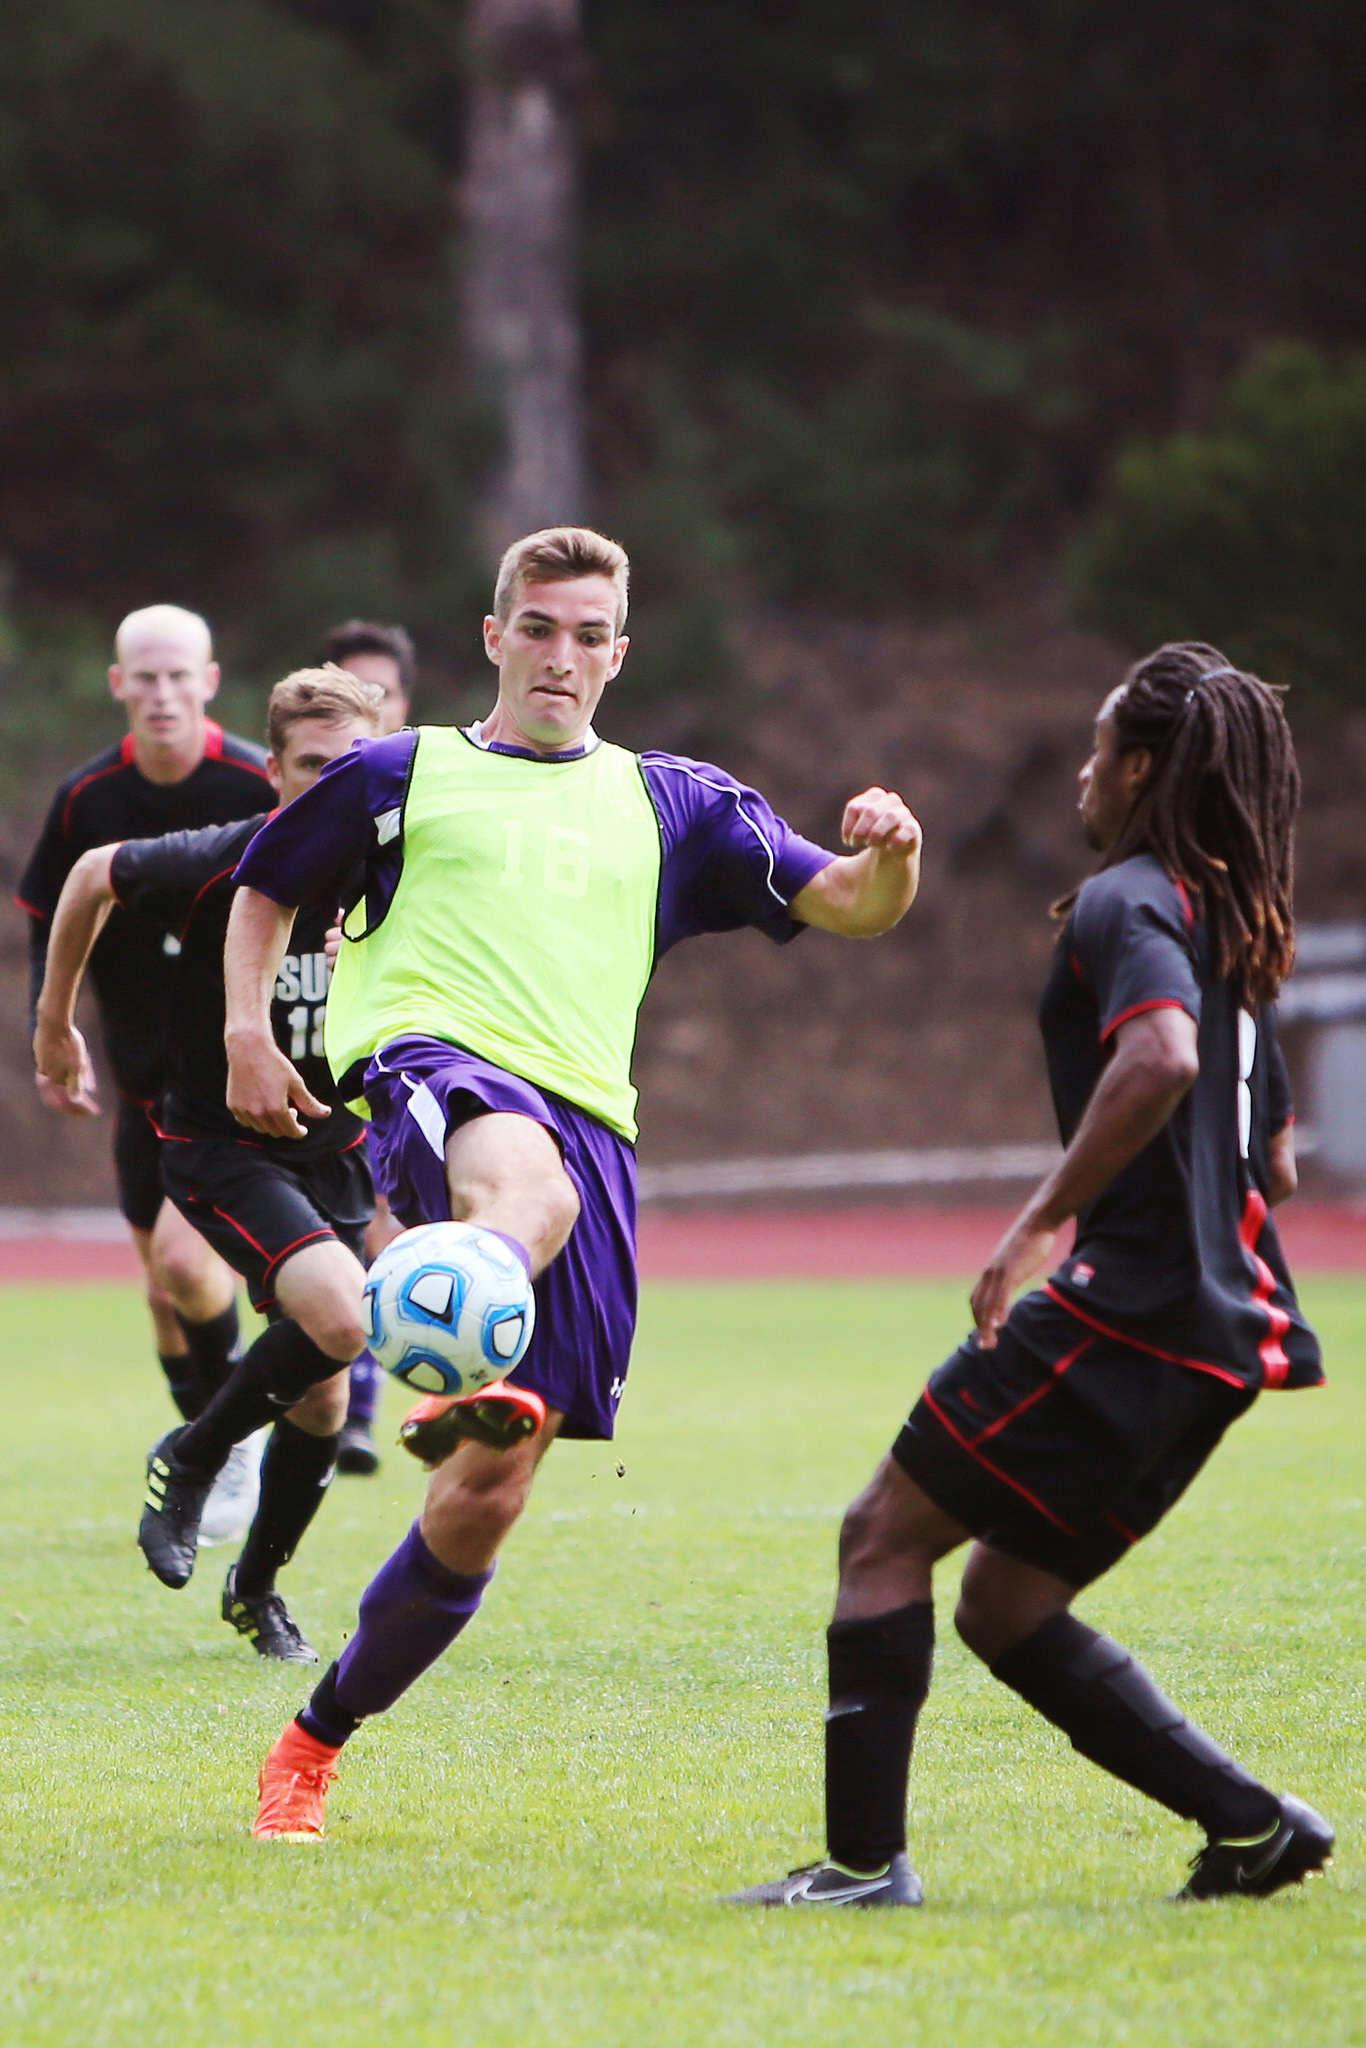 SF State Gator forward Cameron DeJong, # 16, volleys the ball out of the air away from advancing Cal State East Bay players, Kellen Crow, #15, and Arthur Ethel, #3, at Cox Stadium on Sunday, Sept. 28, 2014.